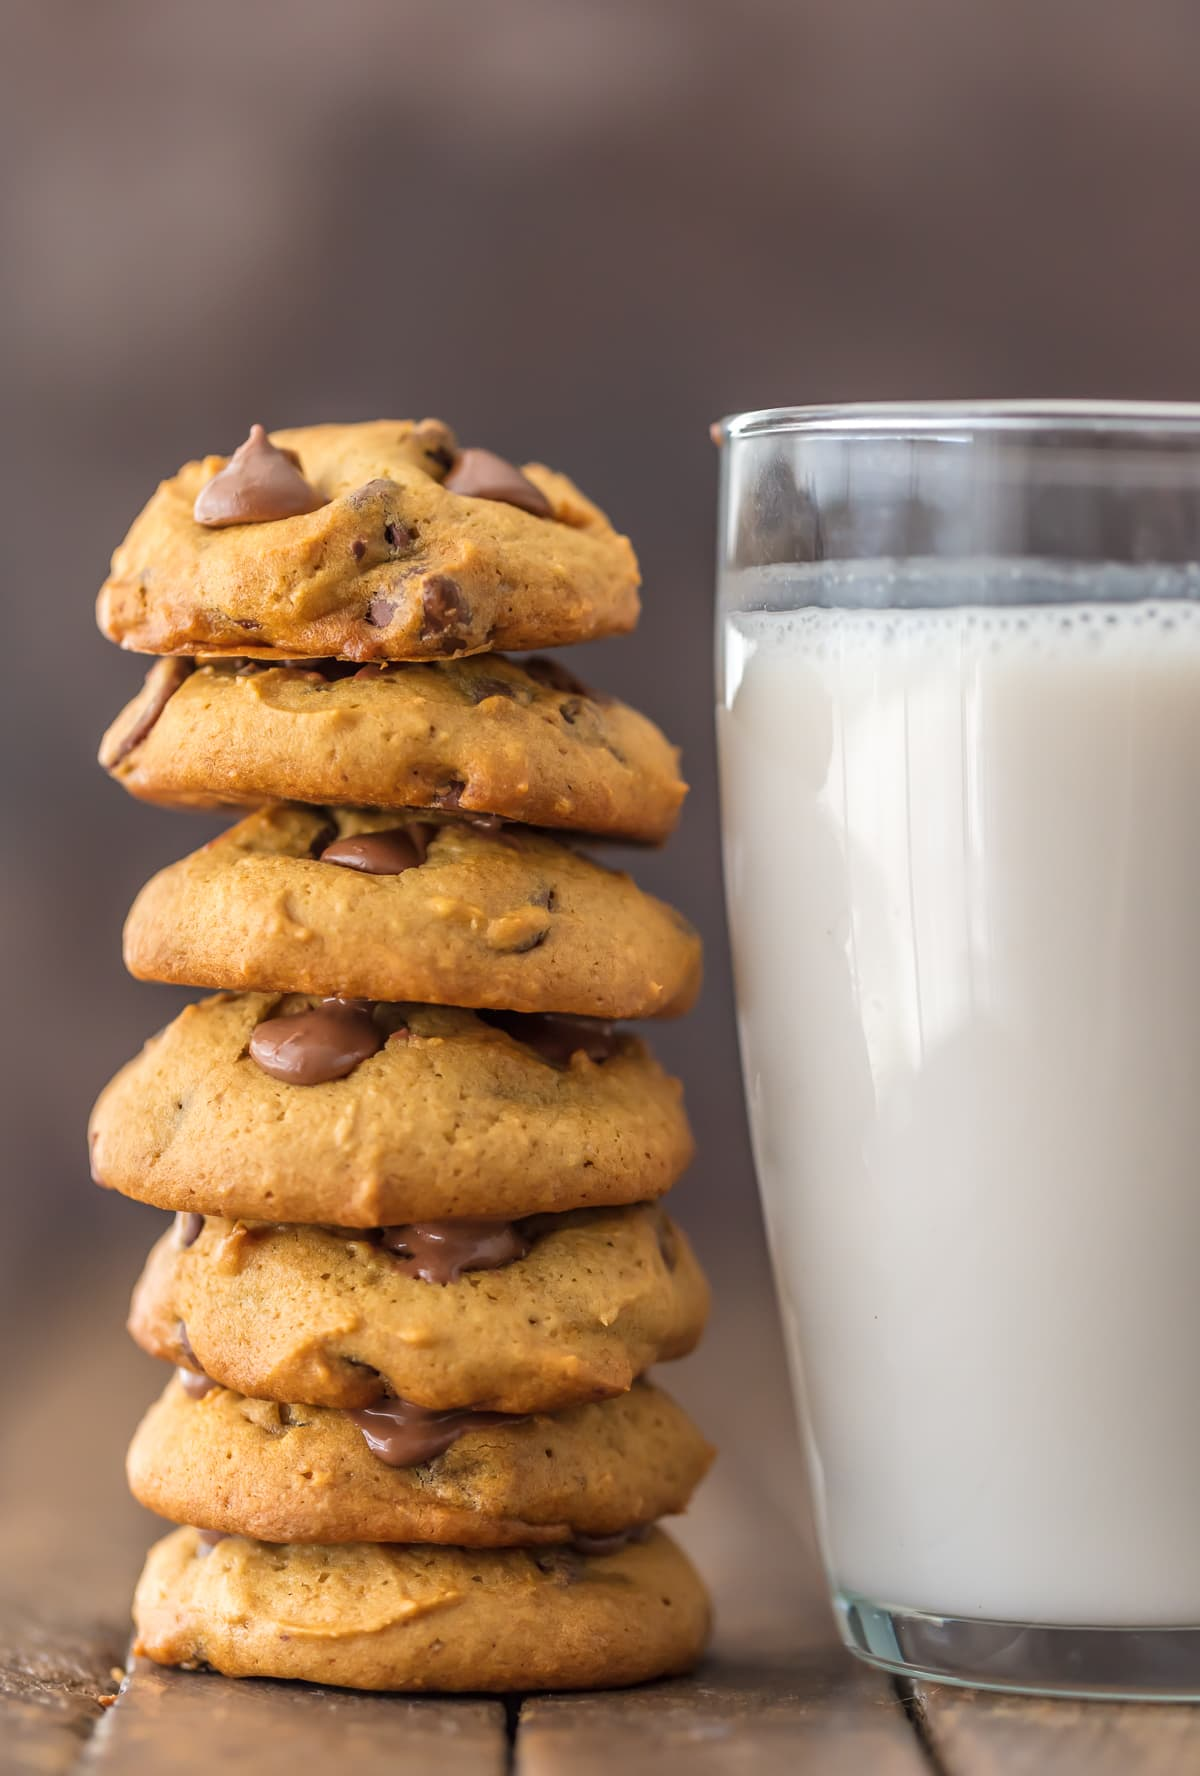 A stack of applesauce chocolate chip cookies next to a glass of milk